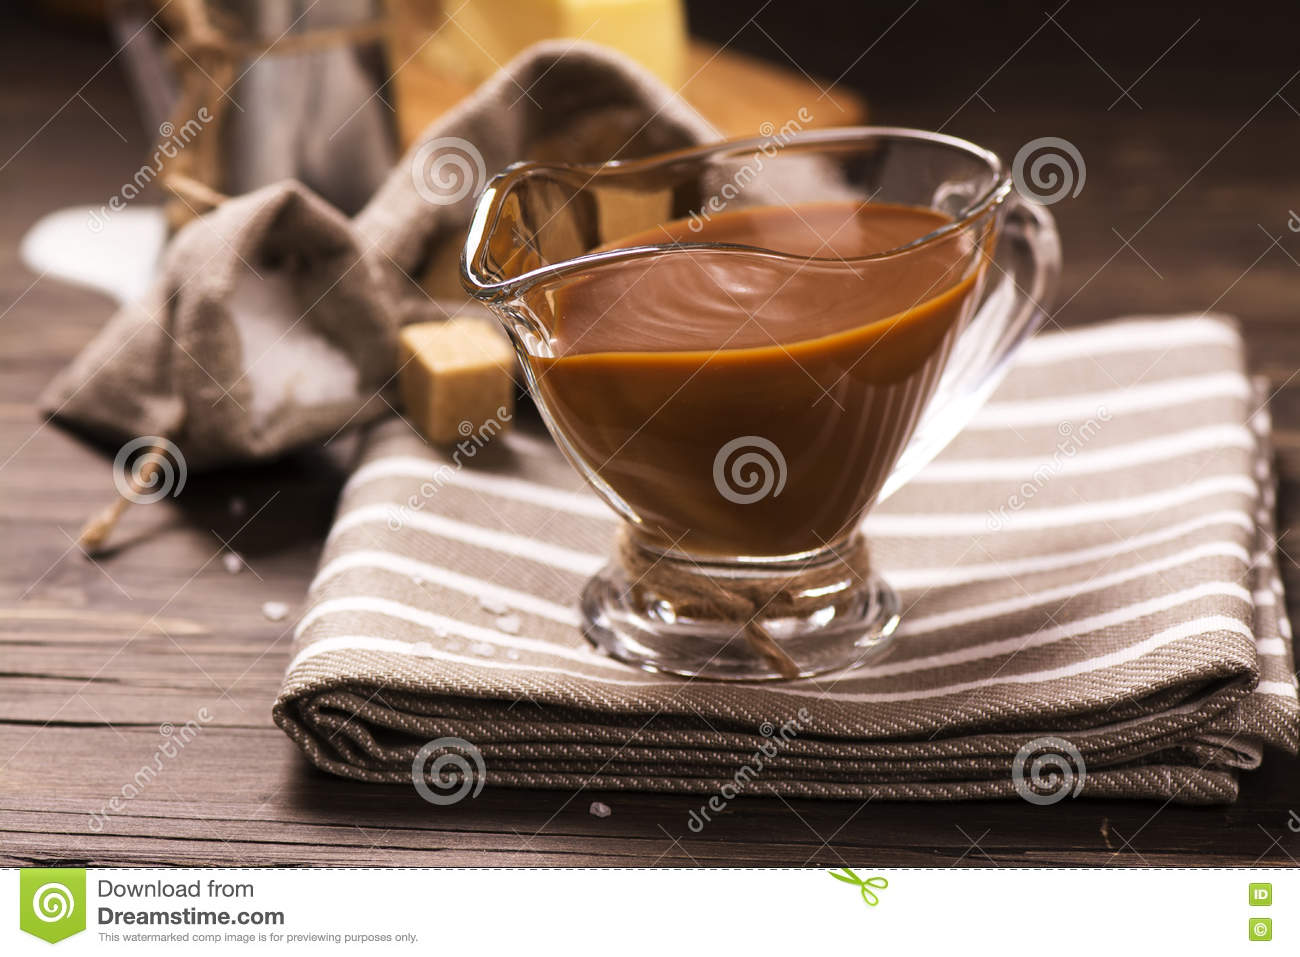 Caramel sauce and ingredients over grunge wooden background.